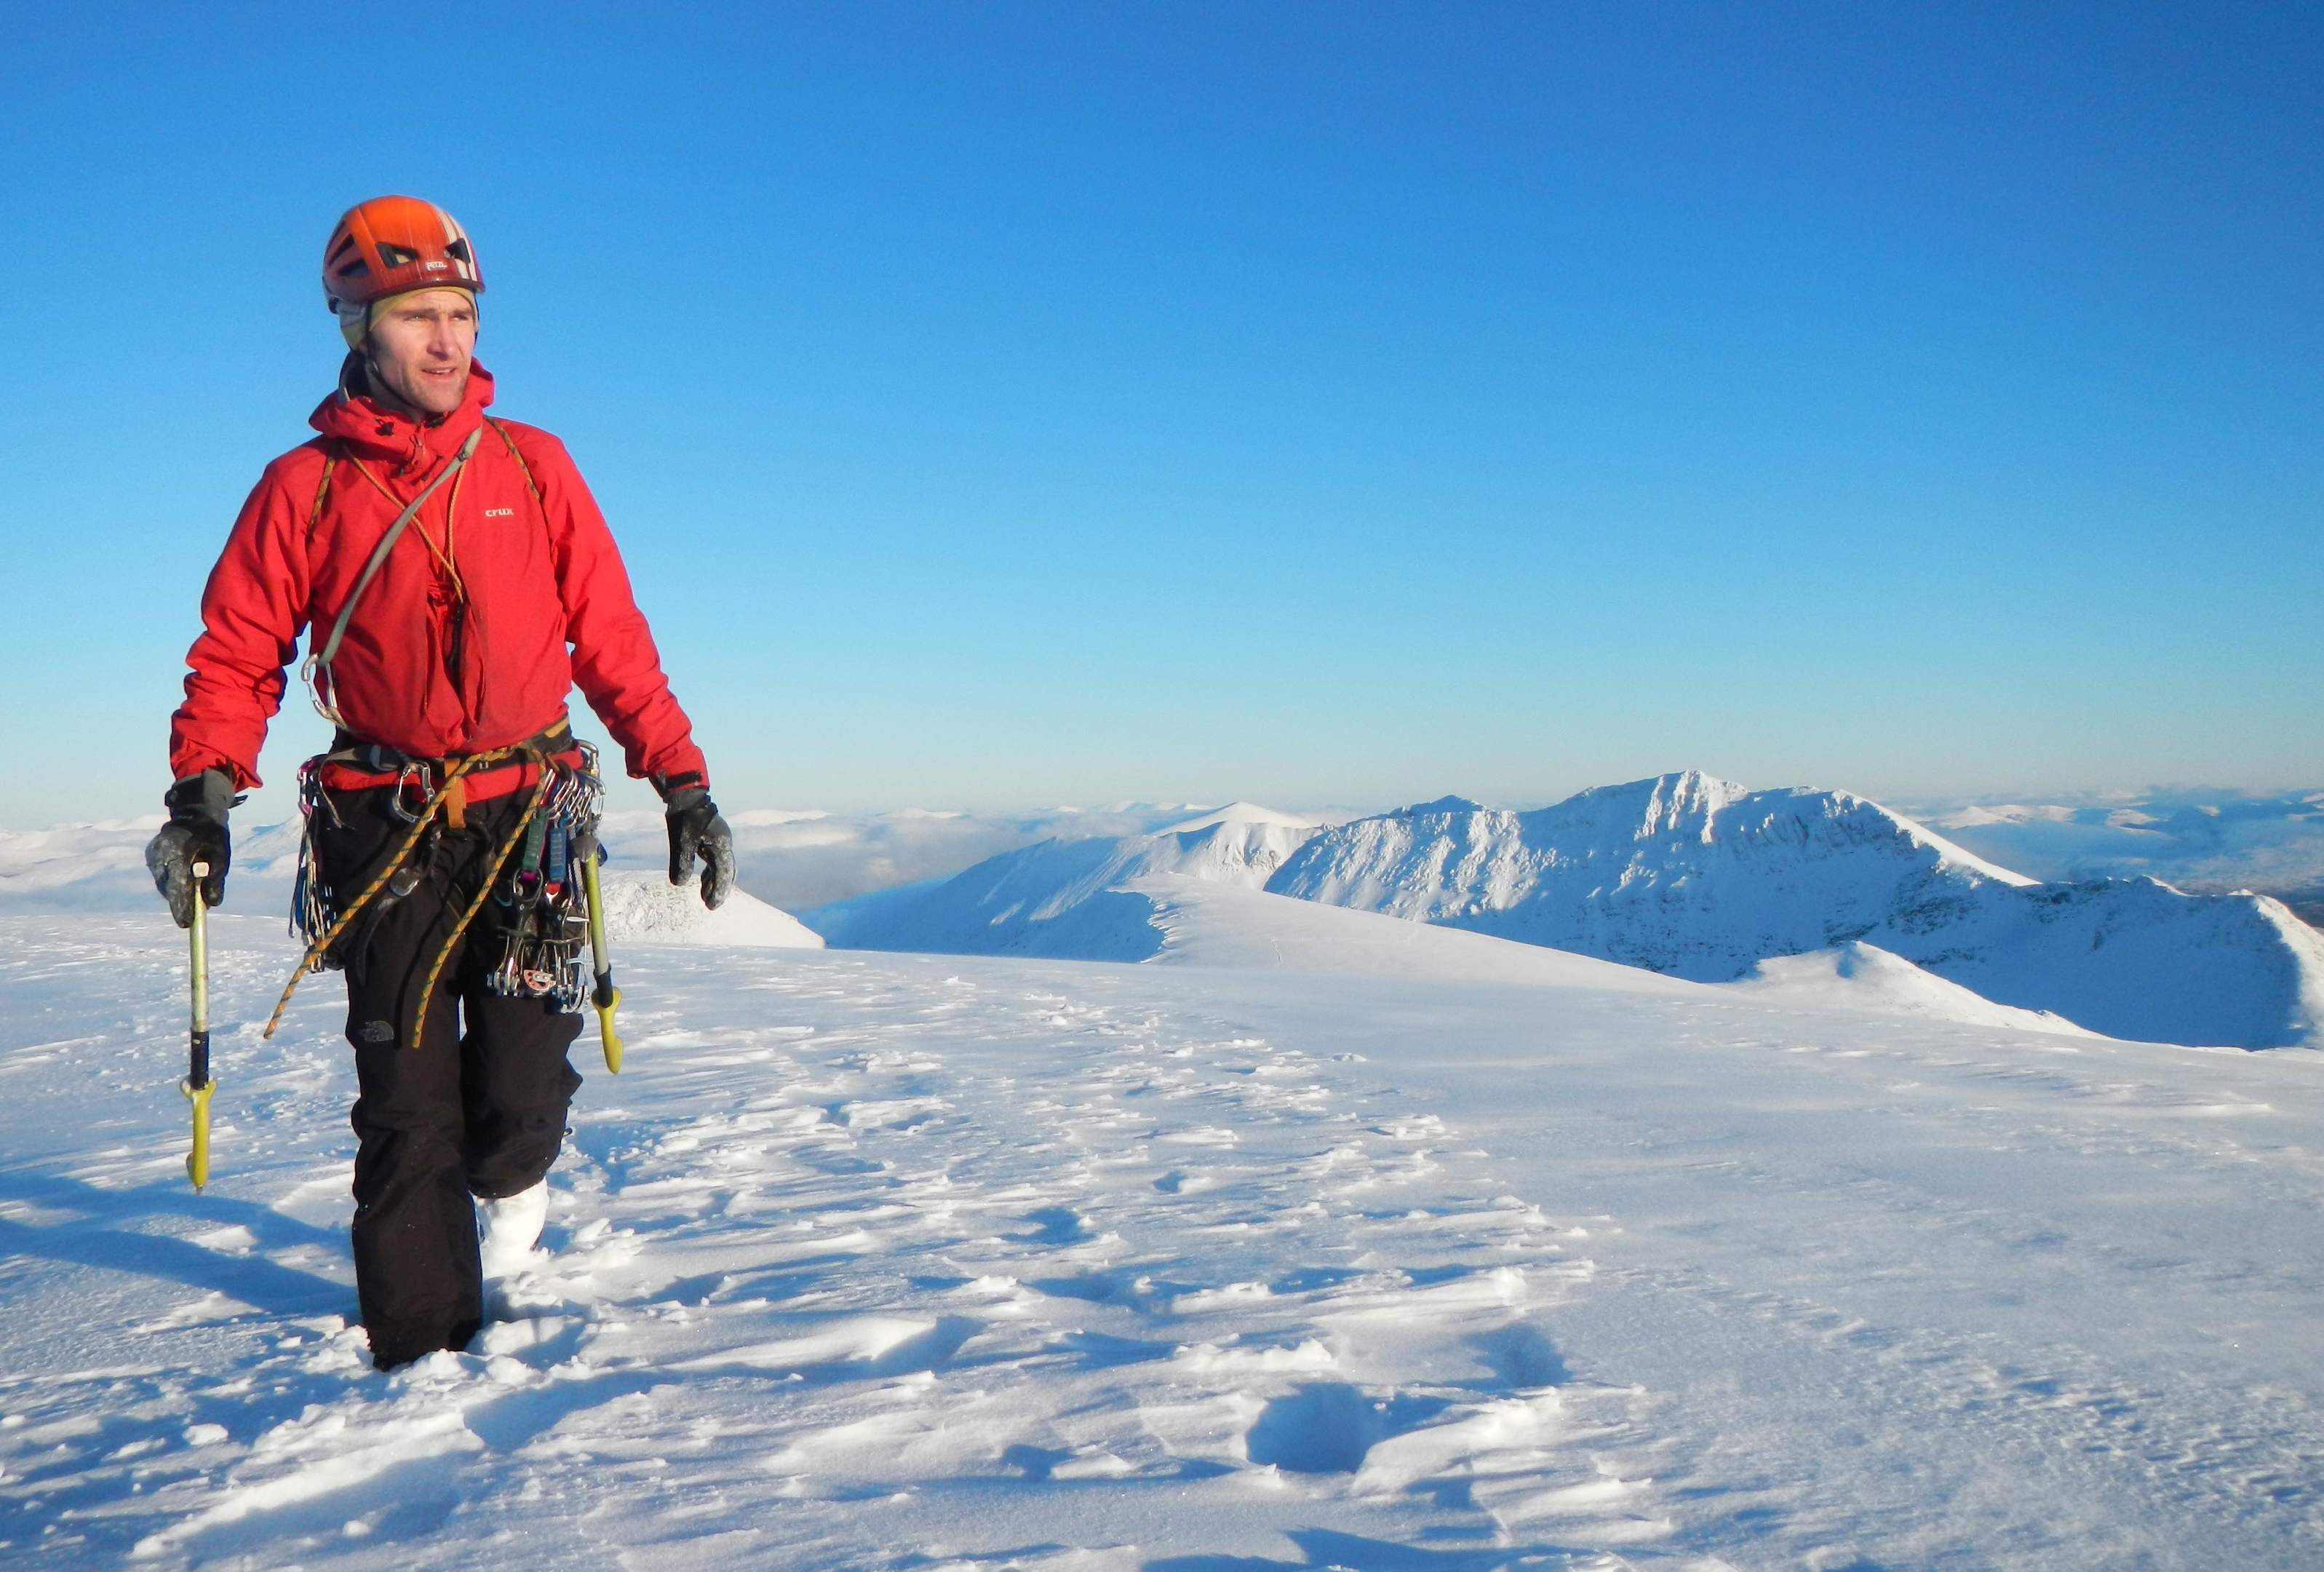 Inverness climber takes on student mountain safety role | Press and ...